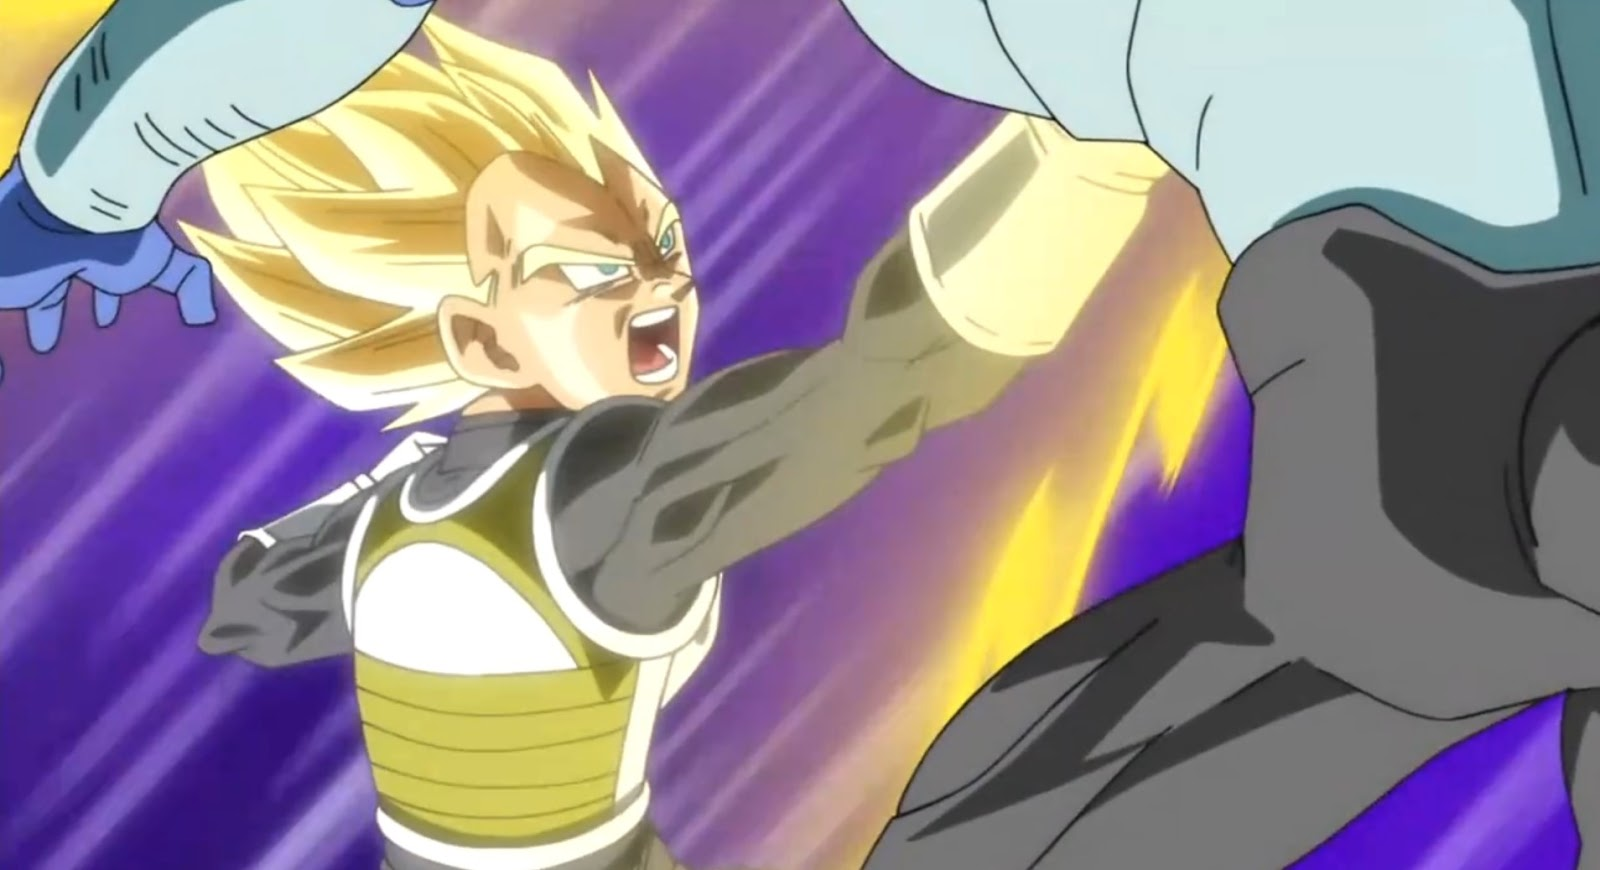 Dragon Ball Super Dublado Episódio 35, Assistir Dragon Ball Super Dublado Episódio 35, Dragon Ball Super Dublado , Dragon Ball Super Dublado - Episódio 35,